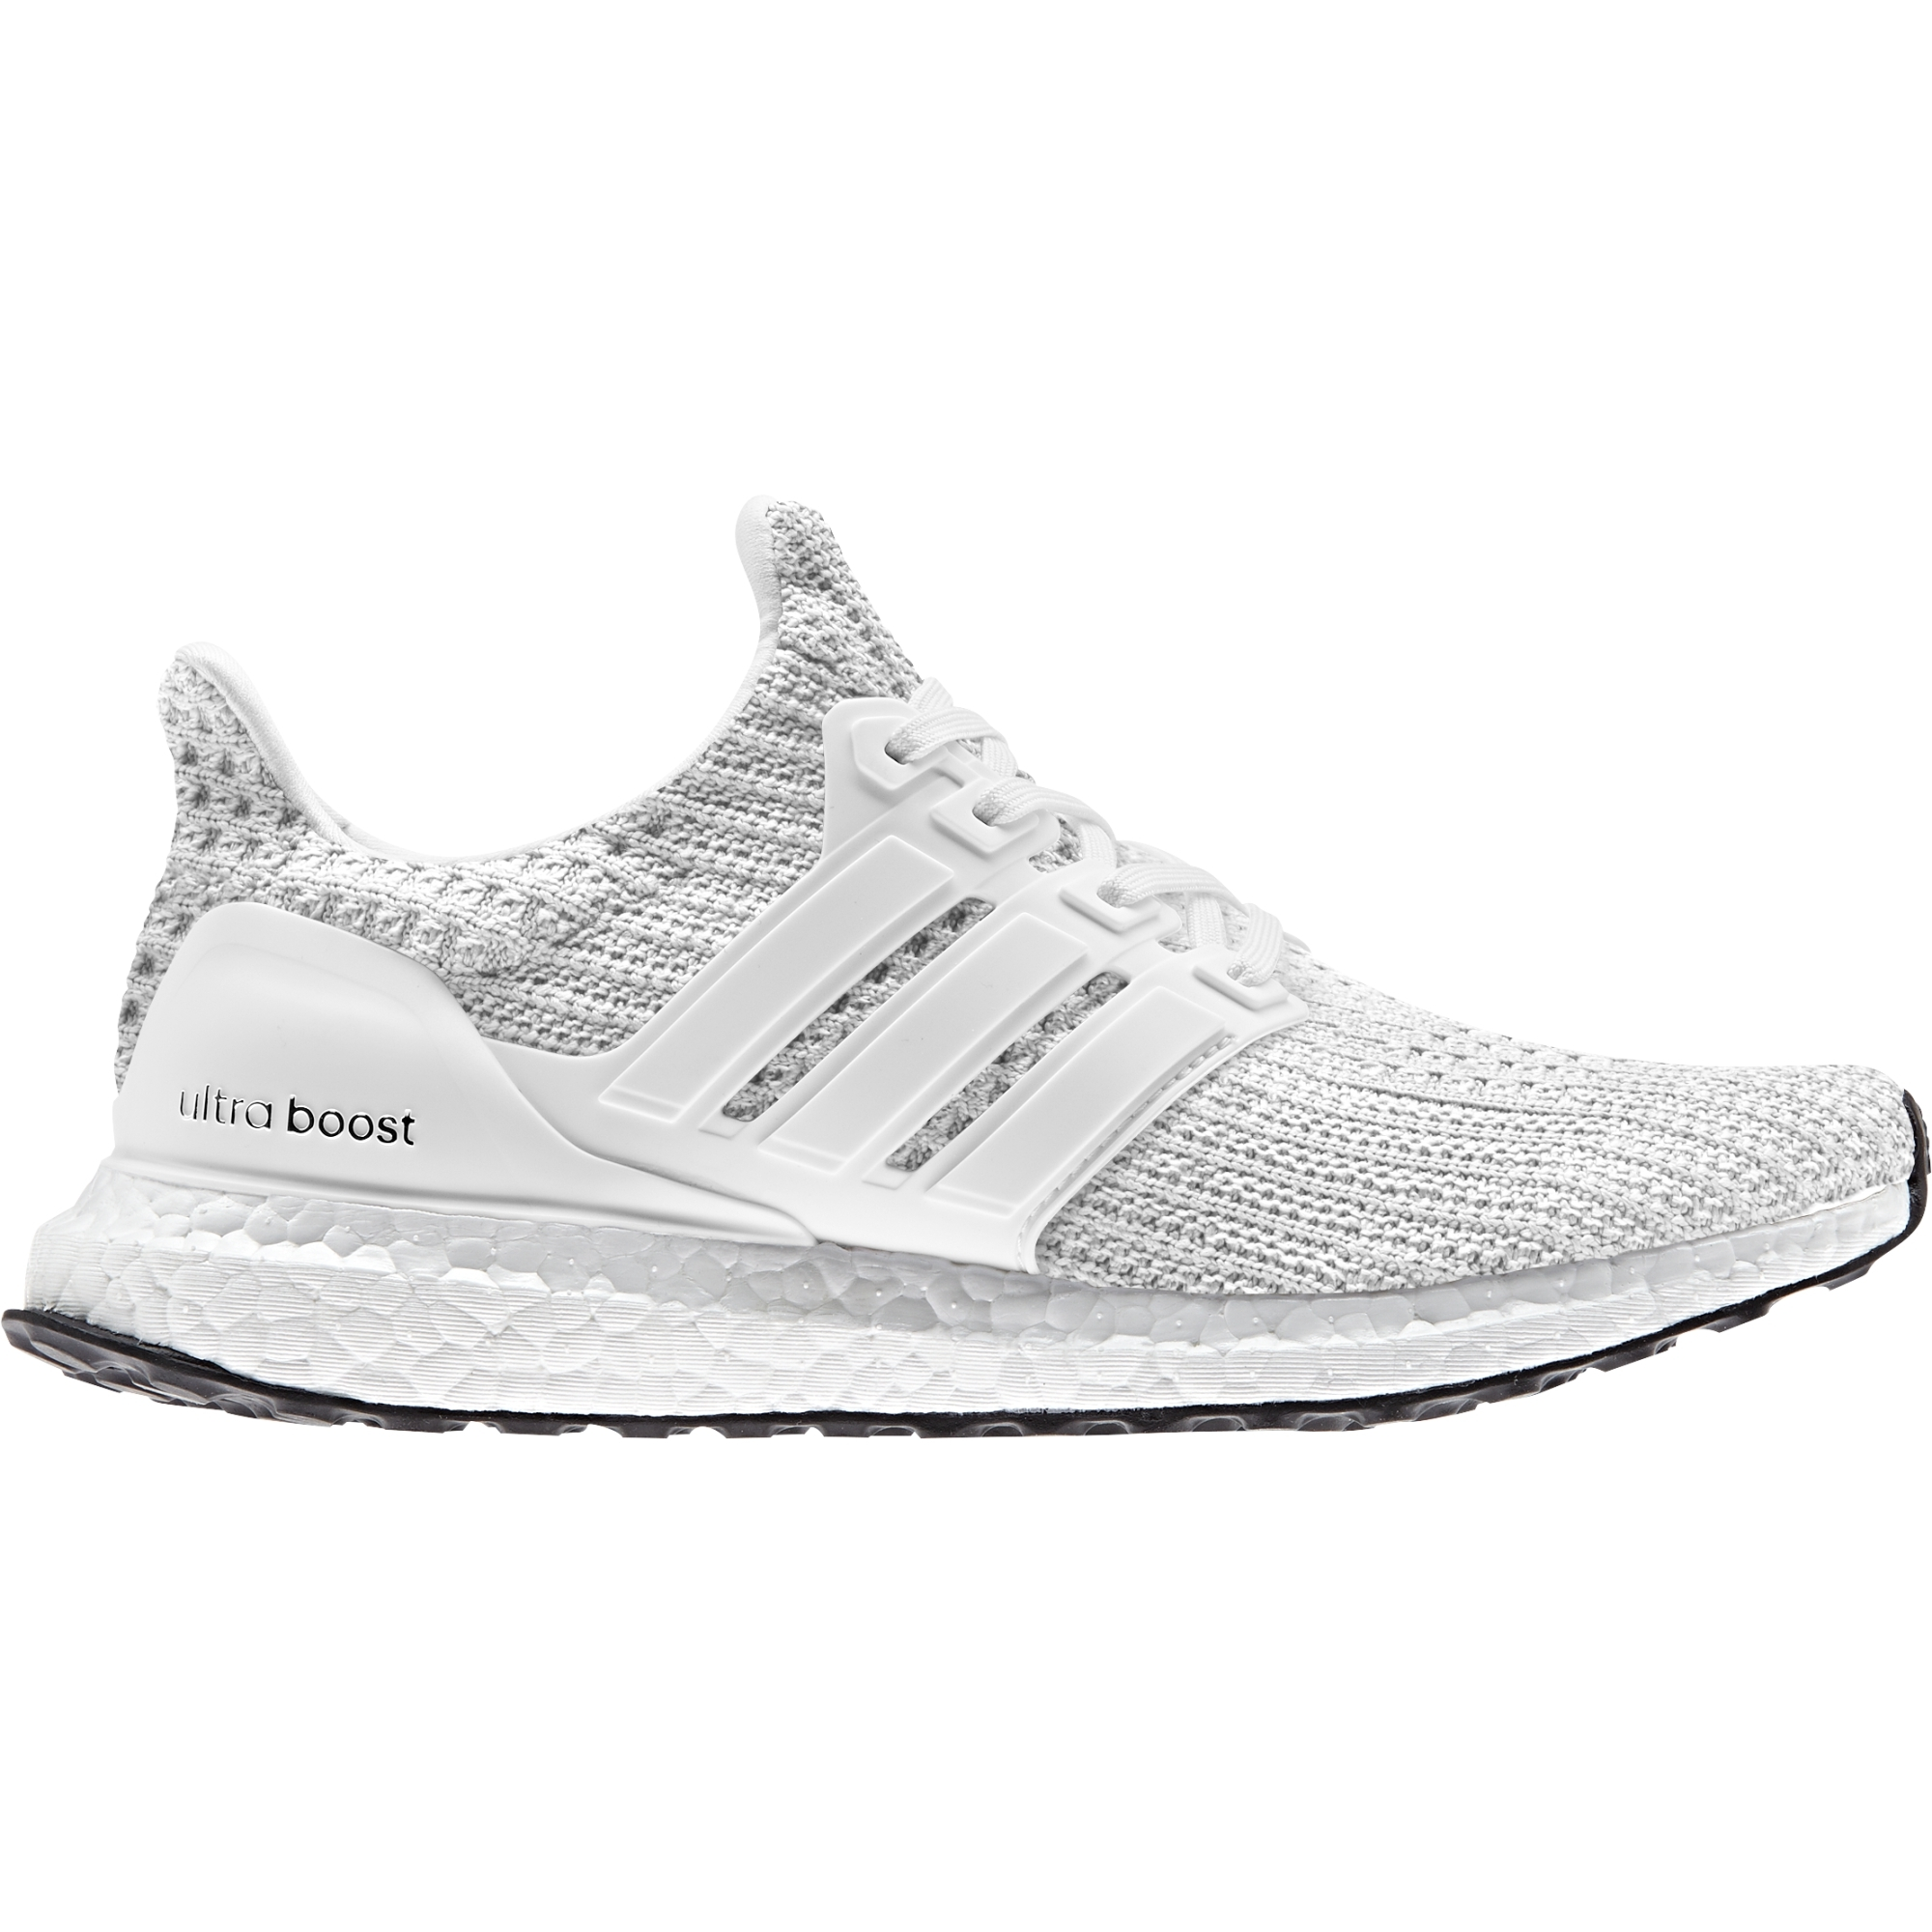 47b3ed1deec adidas Women's Ultra Boost Shoes